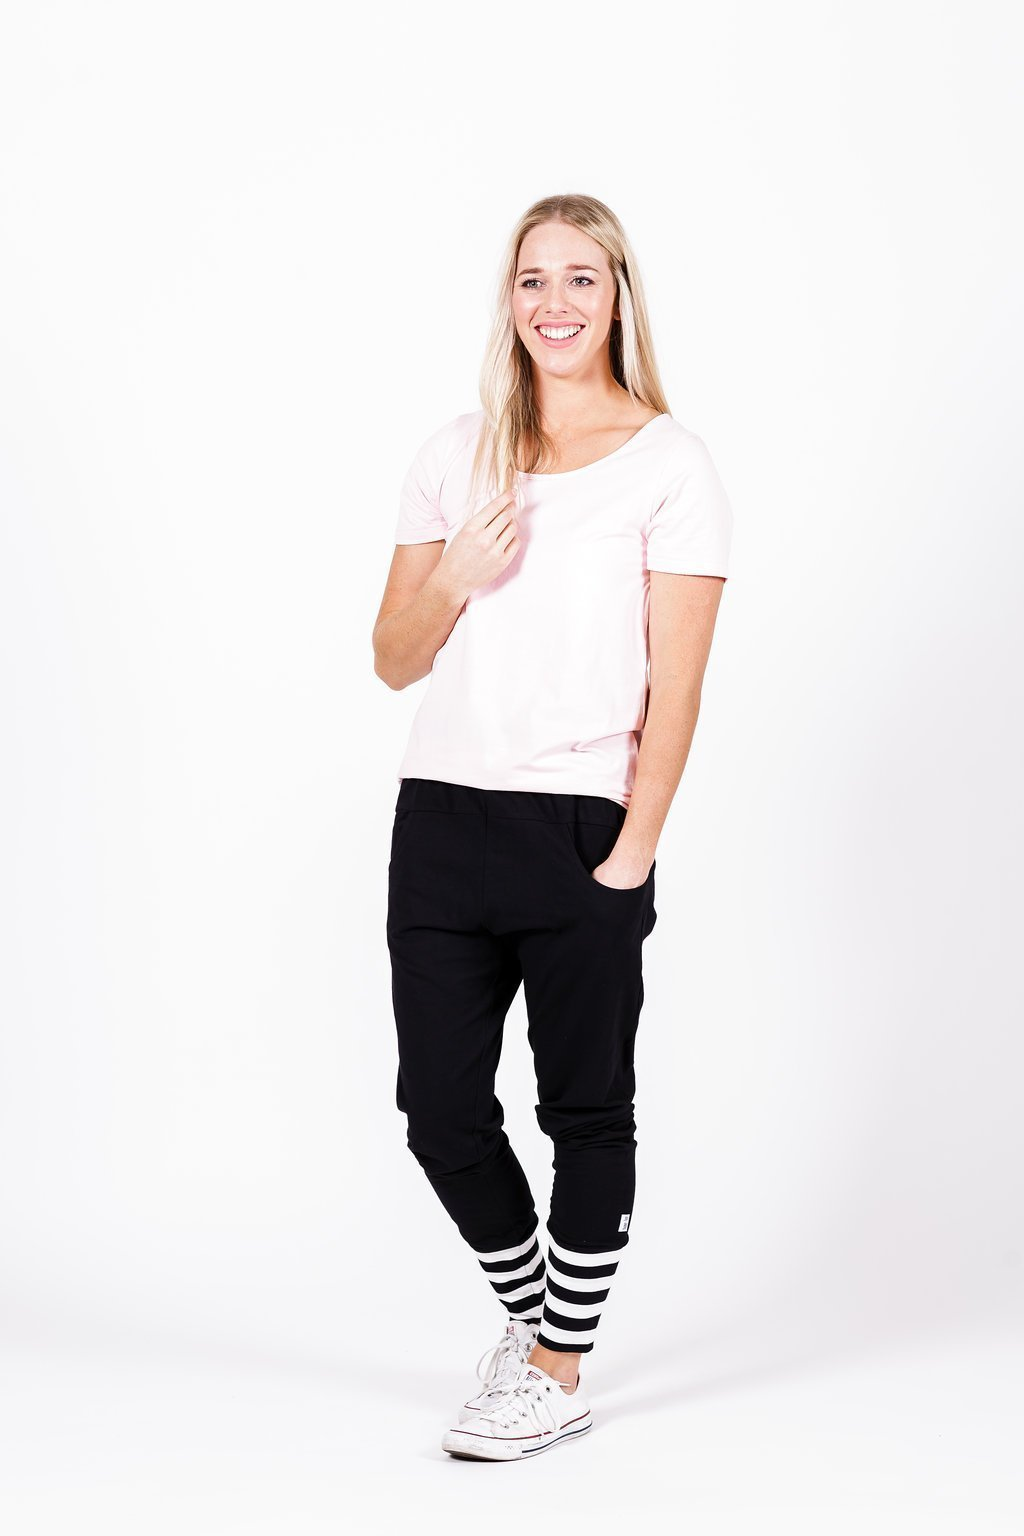 Home-Lee: Apartment Pants -Black With White X Spot Print And Stripe Cuffs - 6 image